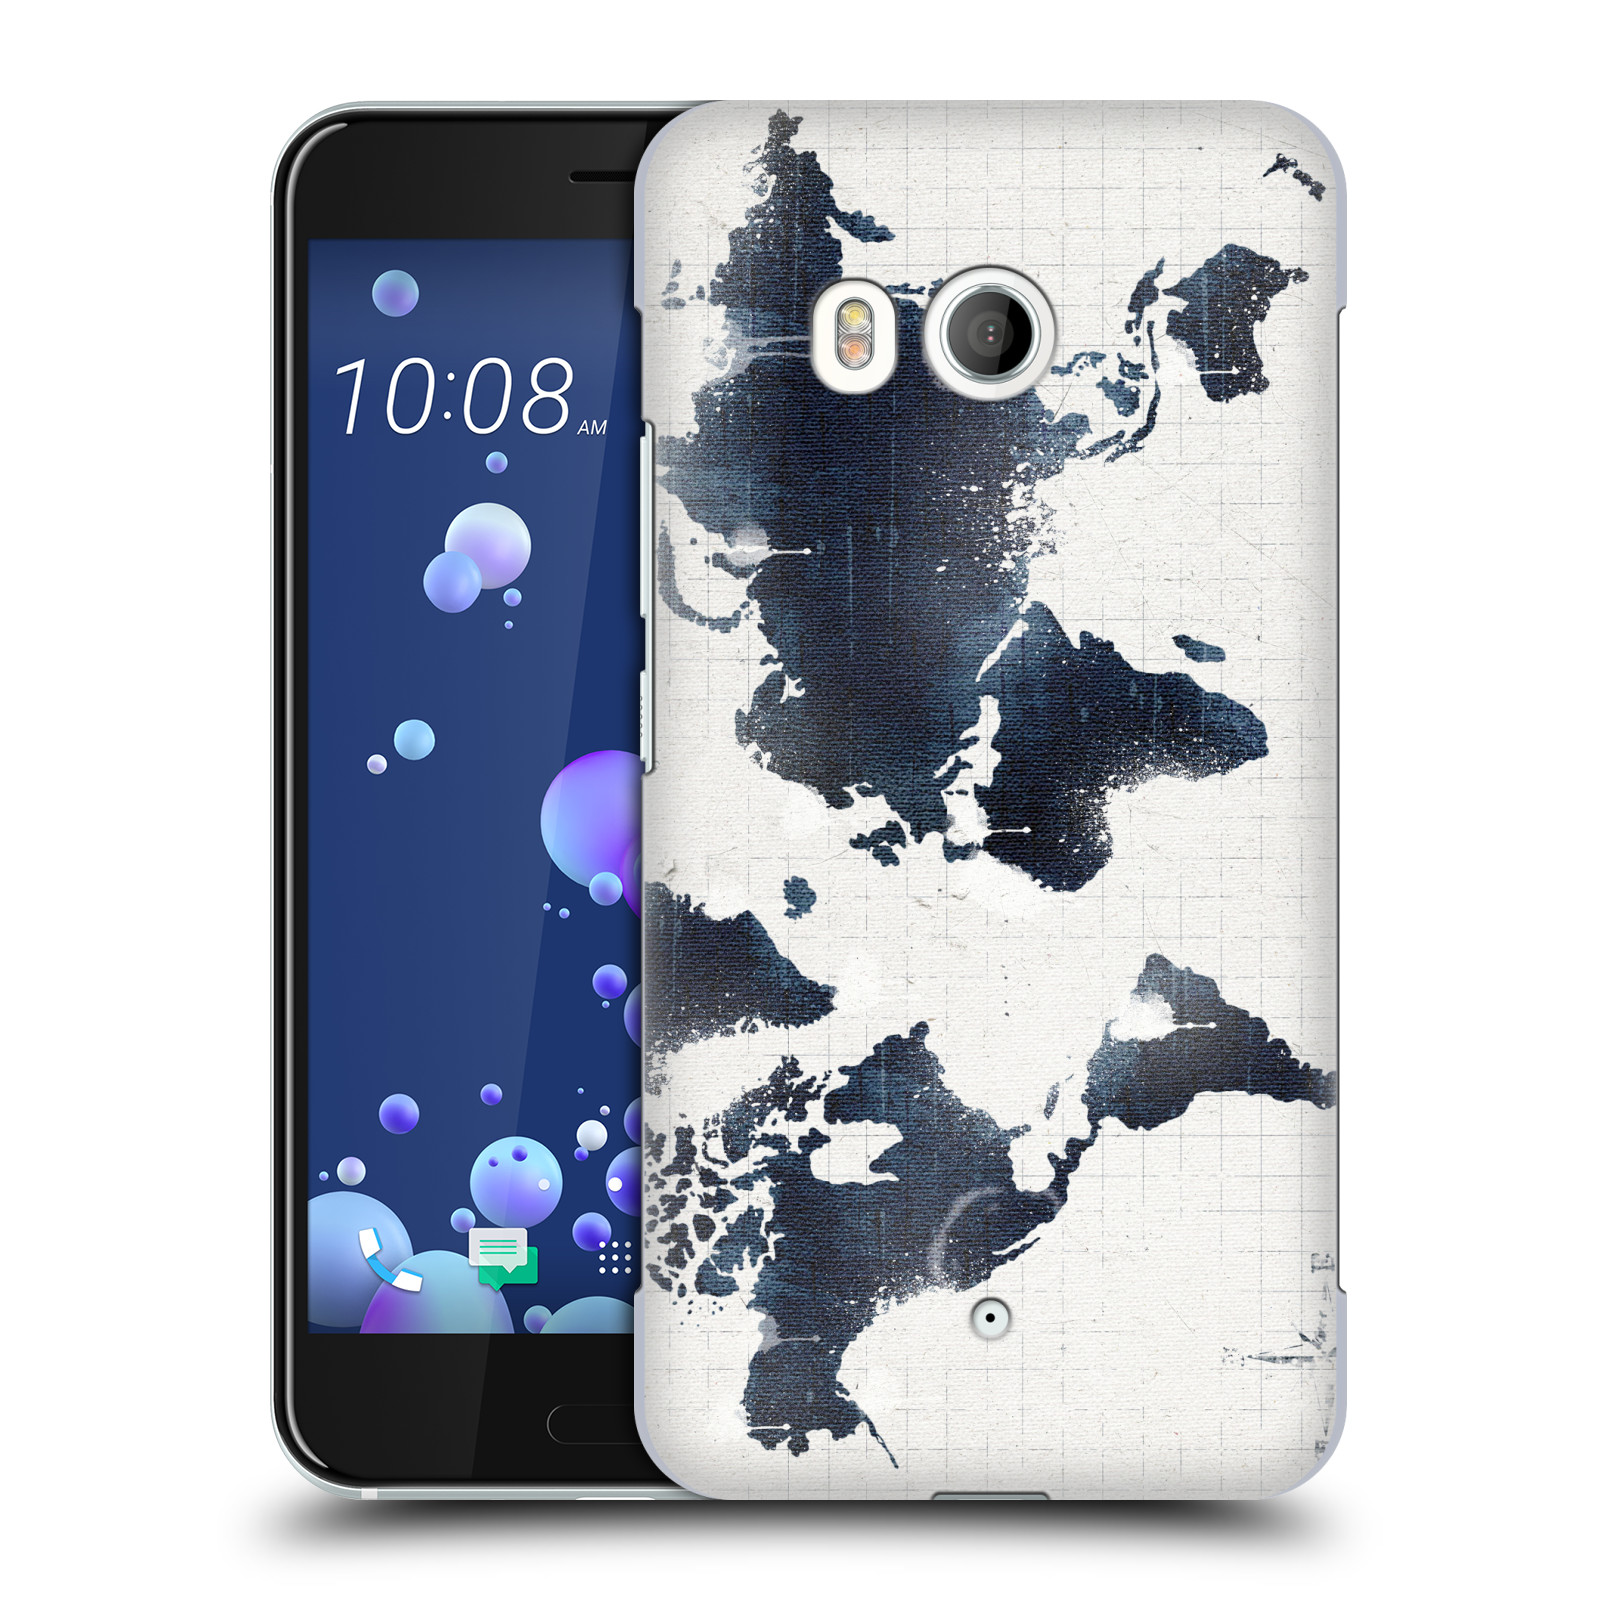 OFFICIAL-ALI-CHRIS-MAP-COLLECTION-HARD-BACK-CASE-FOR-HTC-PHONES-1